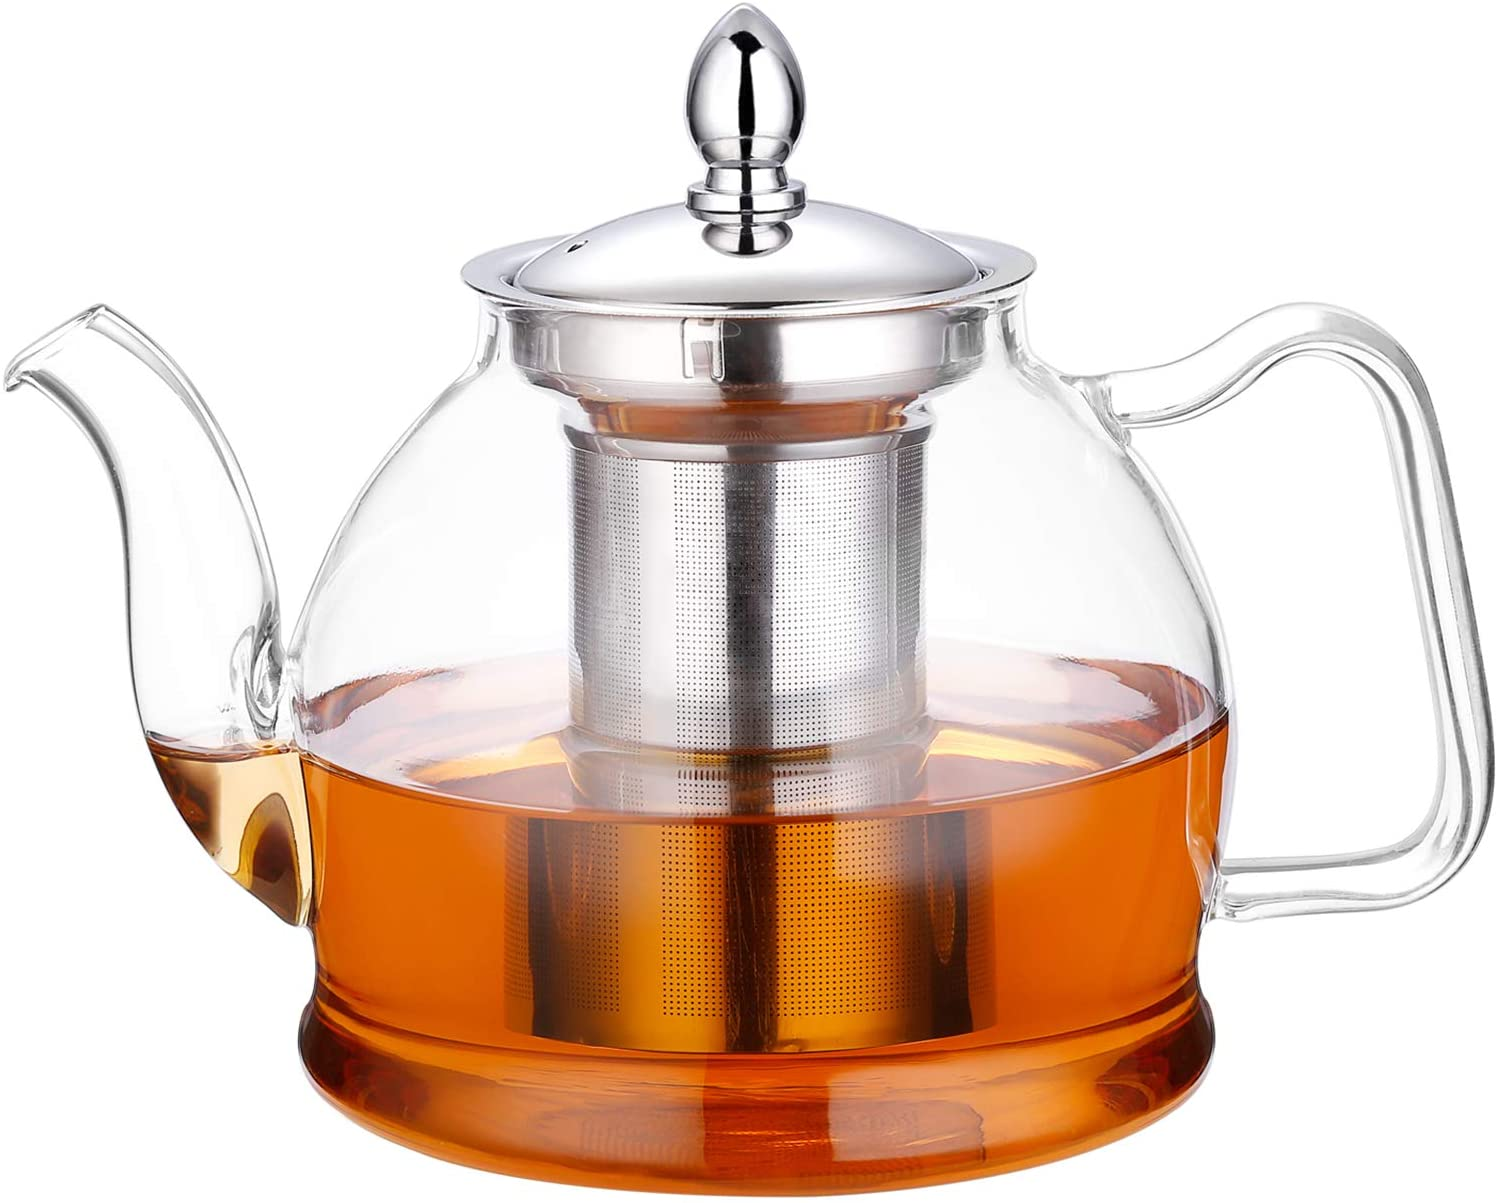 Best Tea Kettle For Gas Stoves 2021: Top 7 Recommendations For Tea Lovers Out There 6 #cookymom